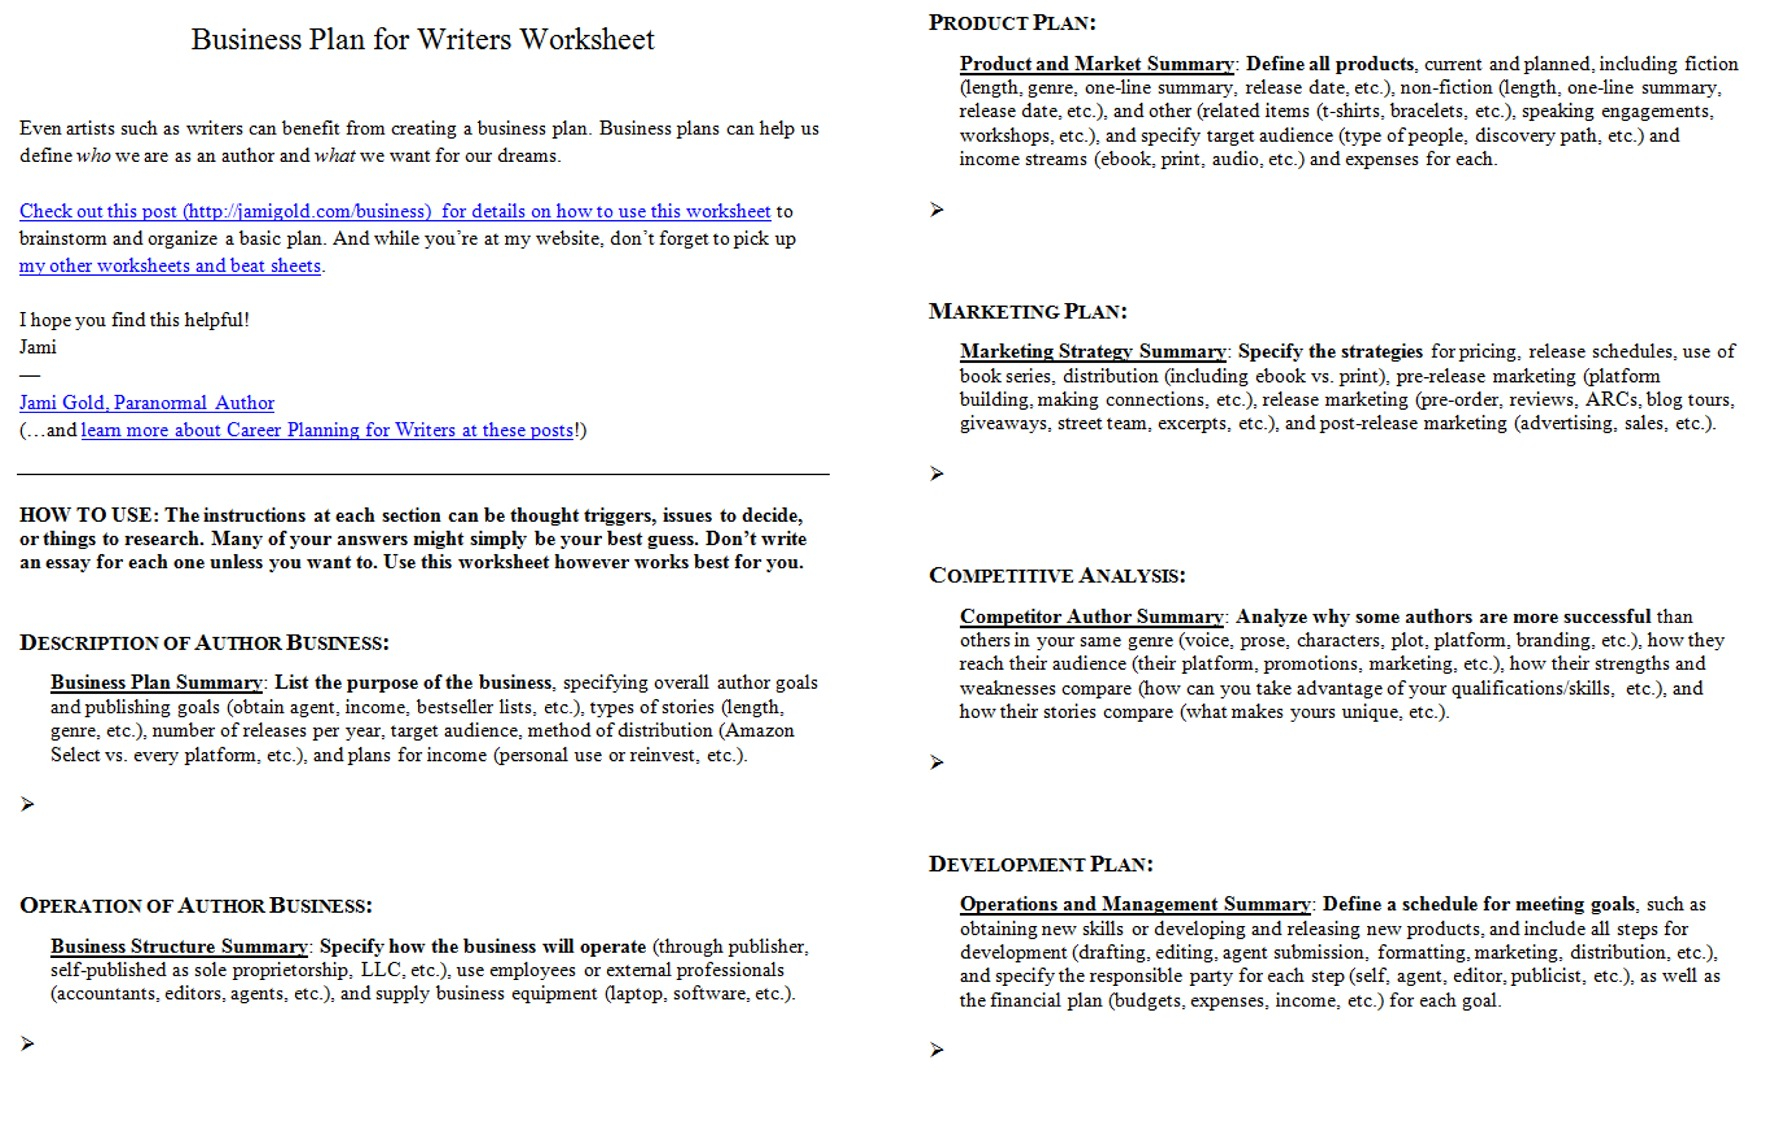 Weirdmailus  Surprising Worksheets For Writers  Jami Gold Paranormal Author With Excellent Screen Shot Of Both Pages Of The Business Plan For Writers Worksheet With Agreeable Arrow Of Light Requirements Worksheet Also Mayan Number System Worksheet In Addition Subjunctive Spanish Worksheets And Addition Puzzle Worksheets As Well As Comprehension Worksheets Grade  Additionally Free Math Worksheets For Th Graders From Jamigoldcom With Weirdmailus  Excellent Worksheets For Writers  Jami Gold Paranormal Author With Agreeable Screen Shot Of Both Pages Of The Business Plan For Writers Worksheet And Surprising Arrow Of Light Requirements Worksheet Also Mayan Number System Worksheet In Addition Subjunctive Spanish Worksheets From Jamigoldcom